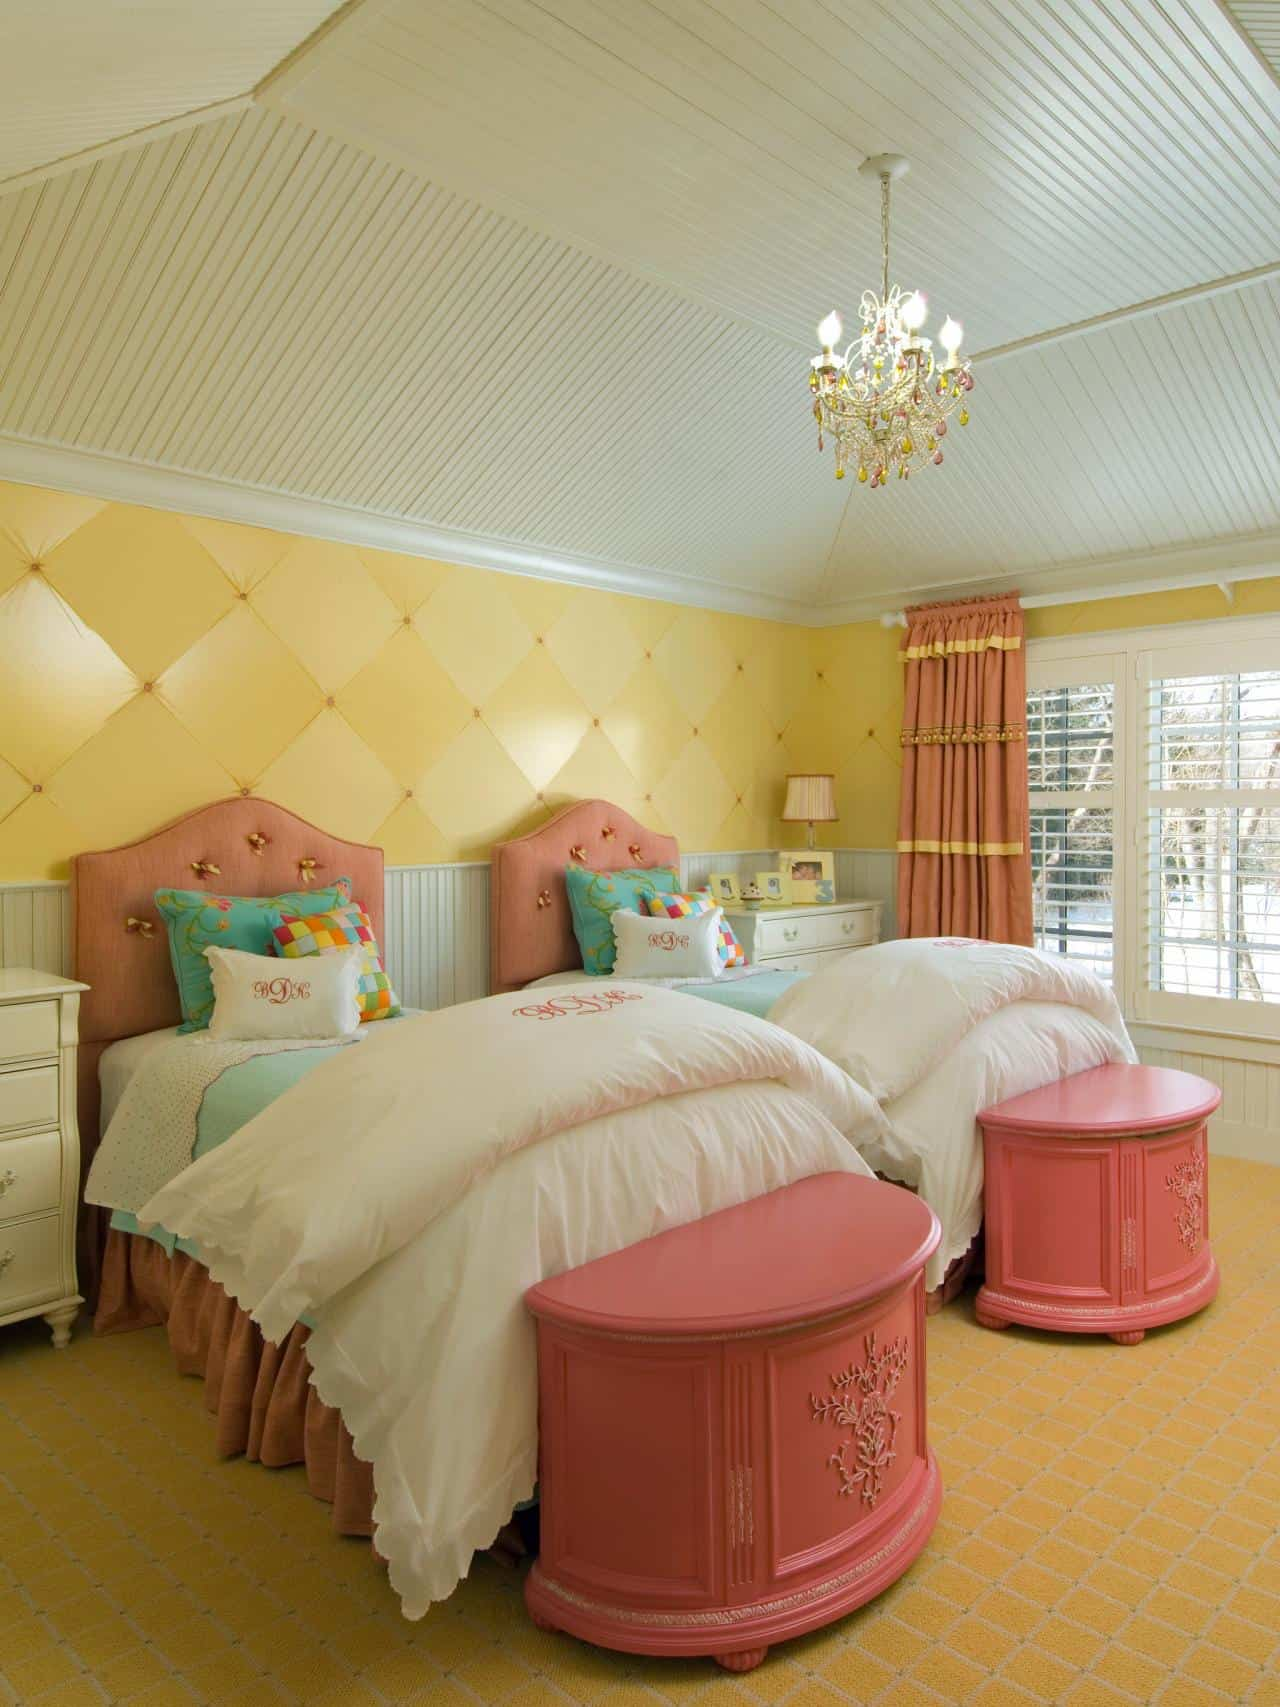 beige, yellow and pink room